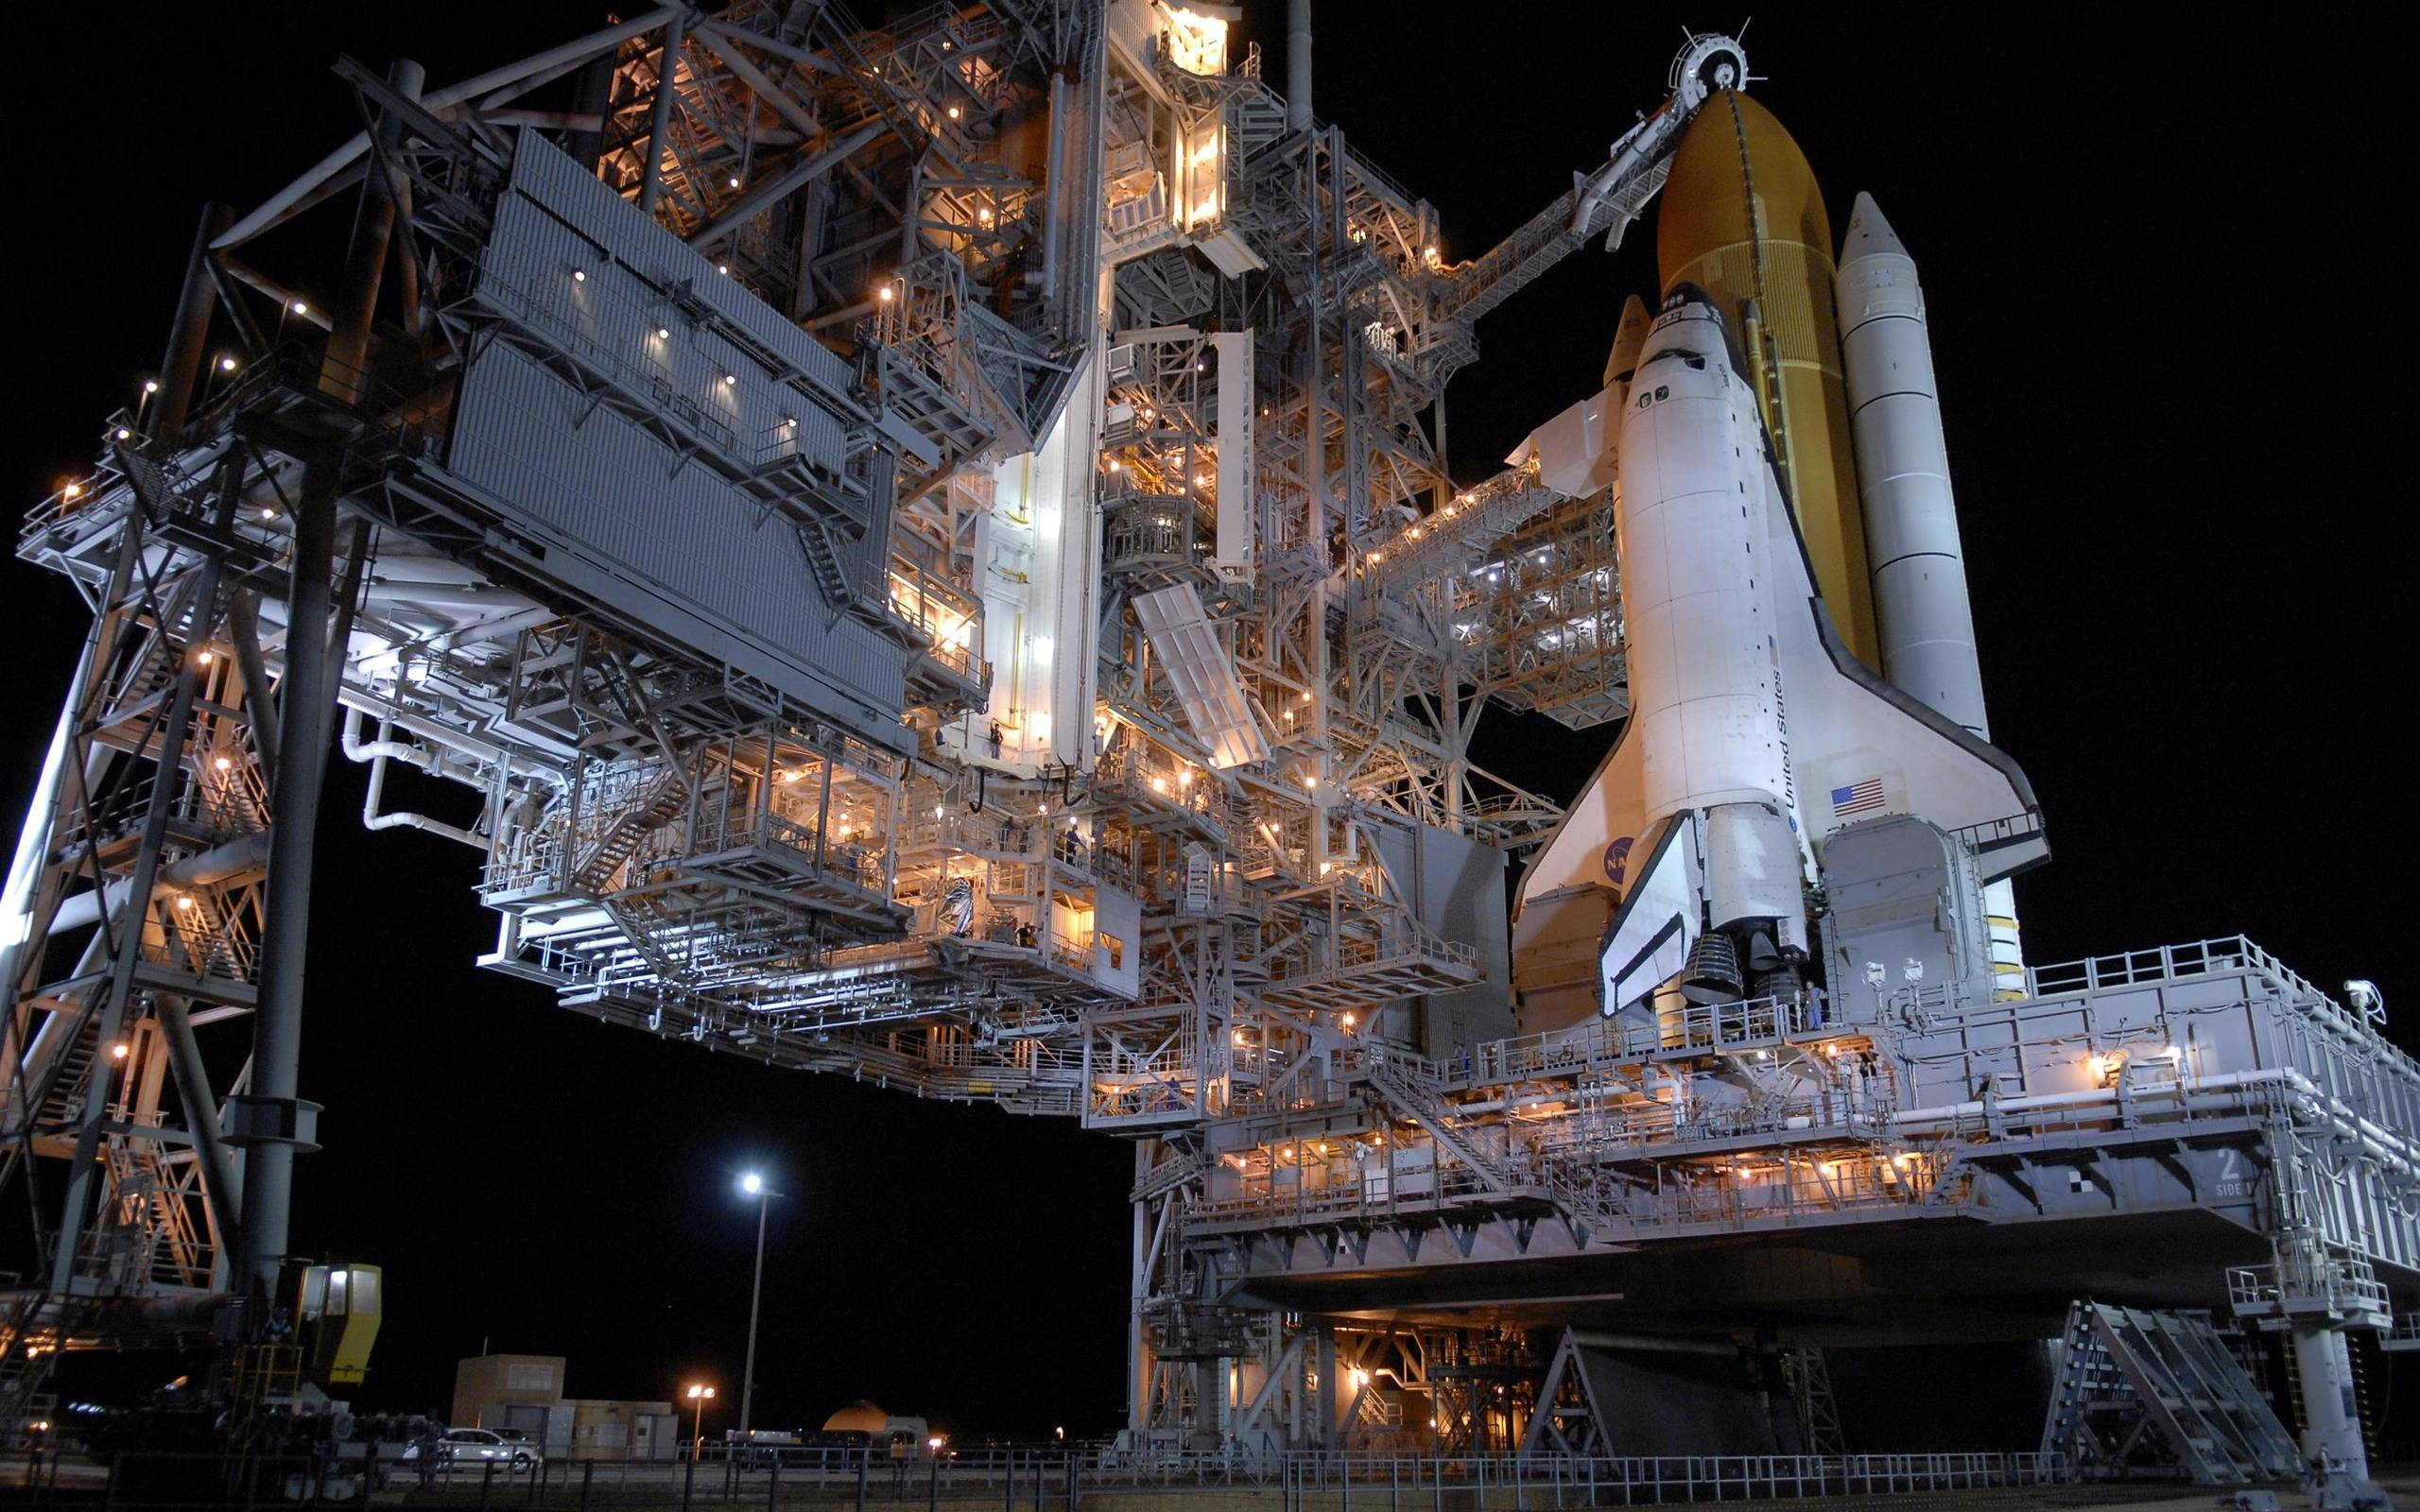 hd space shuttle in space - photo #23